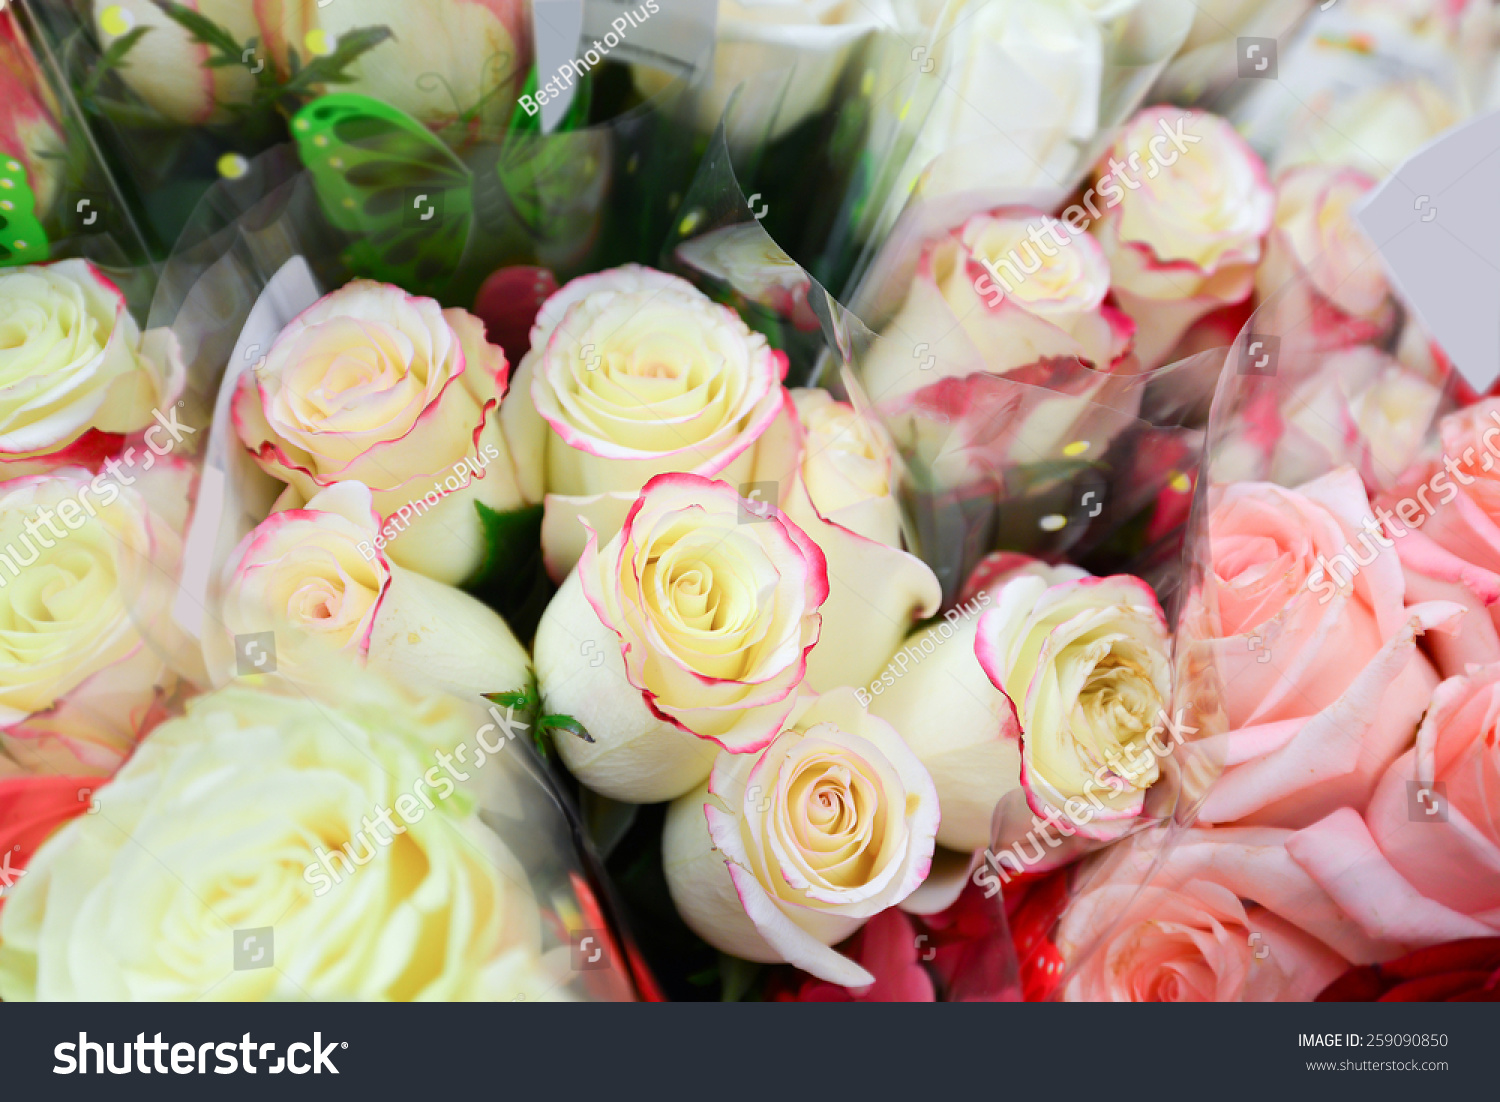 Flower bouquet different flowers stock photo 259090850 shutterstock a flower bouquet with a lot of a different flowers izmirmasajfo